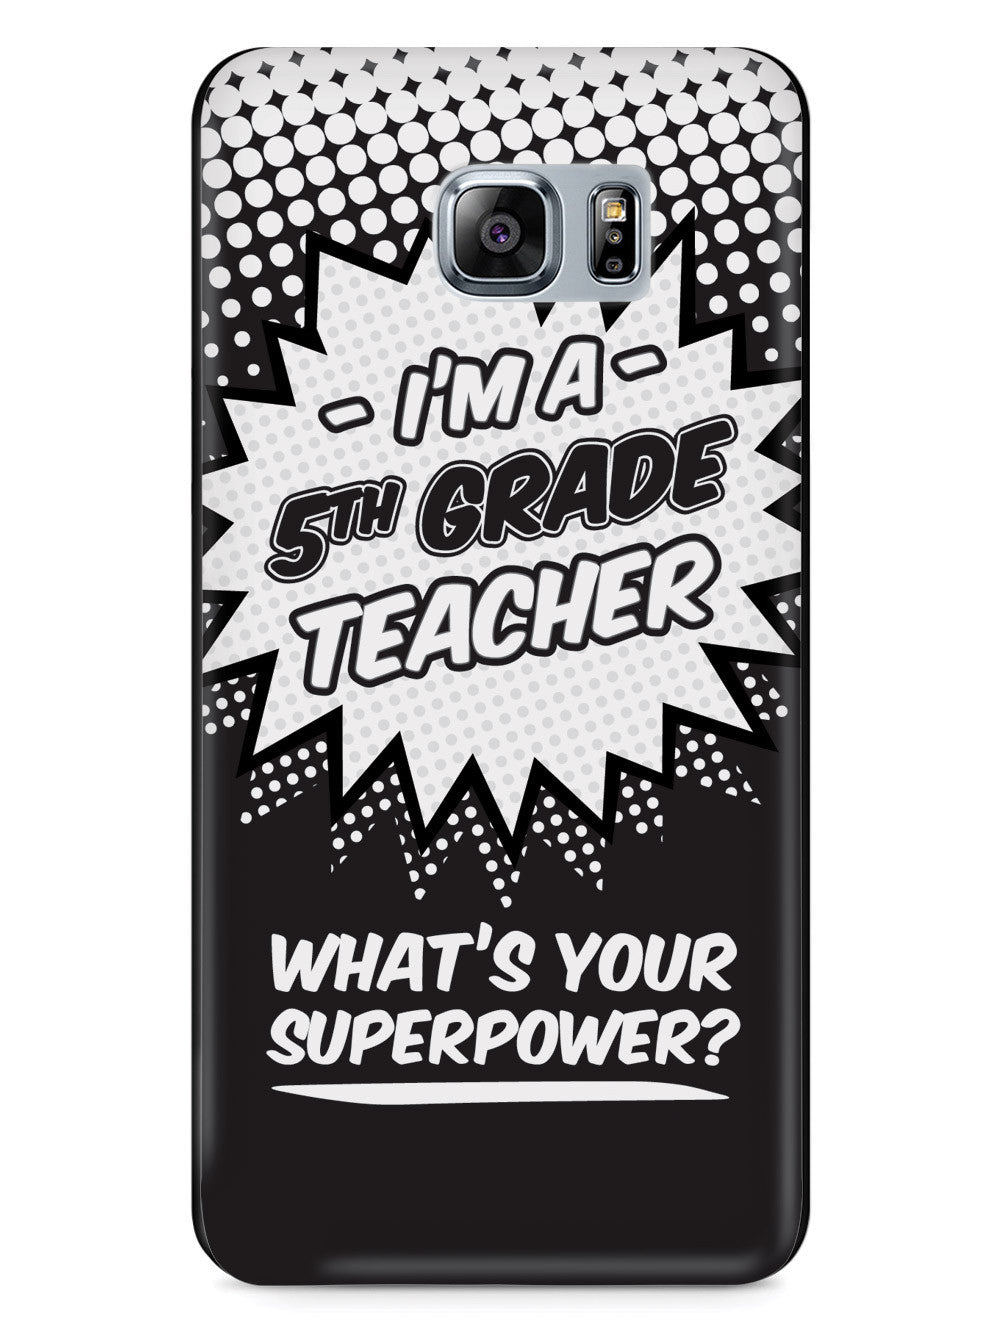 5th Grade Teacher - What's Your Superpower? Case